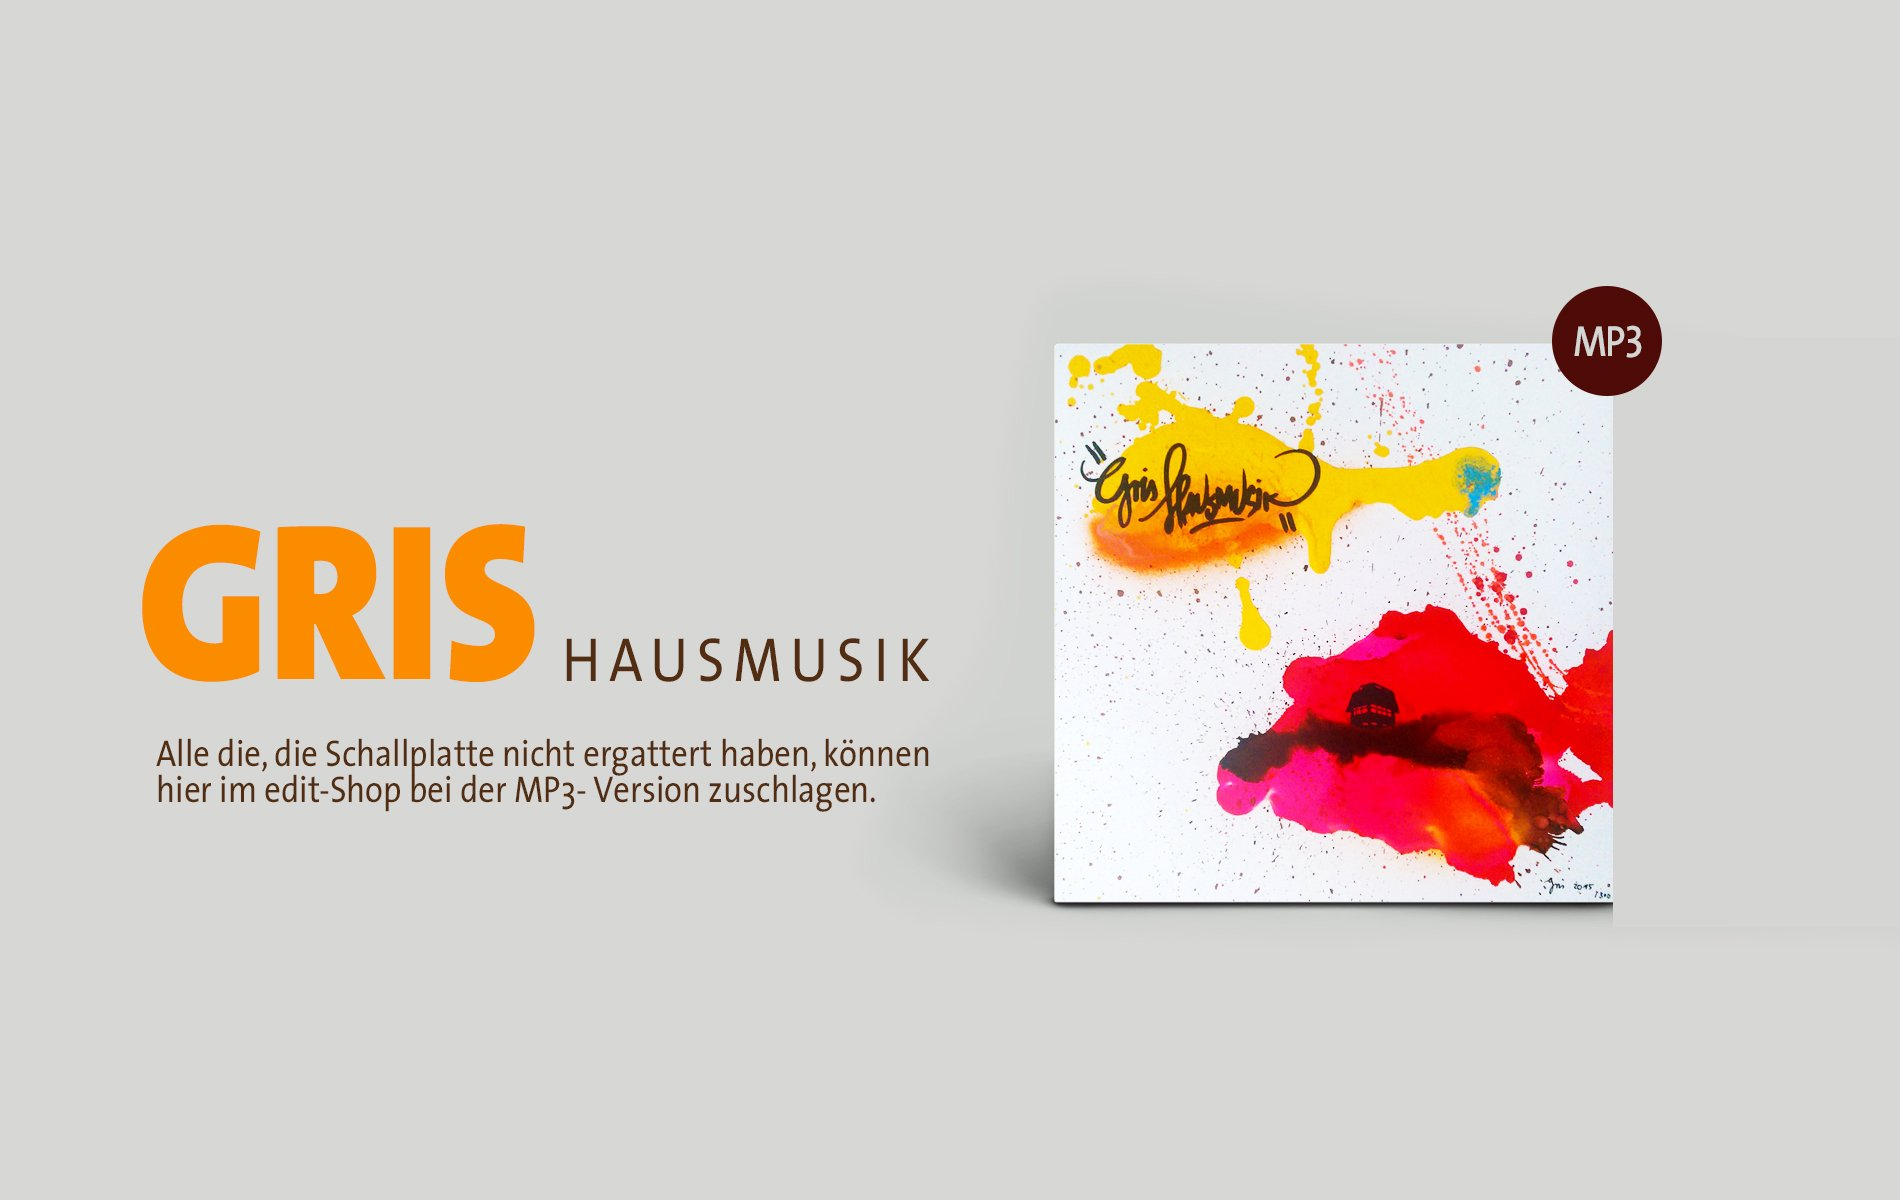 GRIS Hausmusik MP3